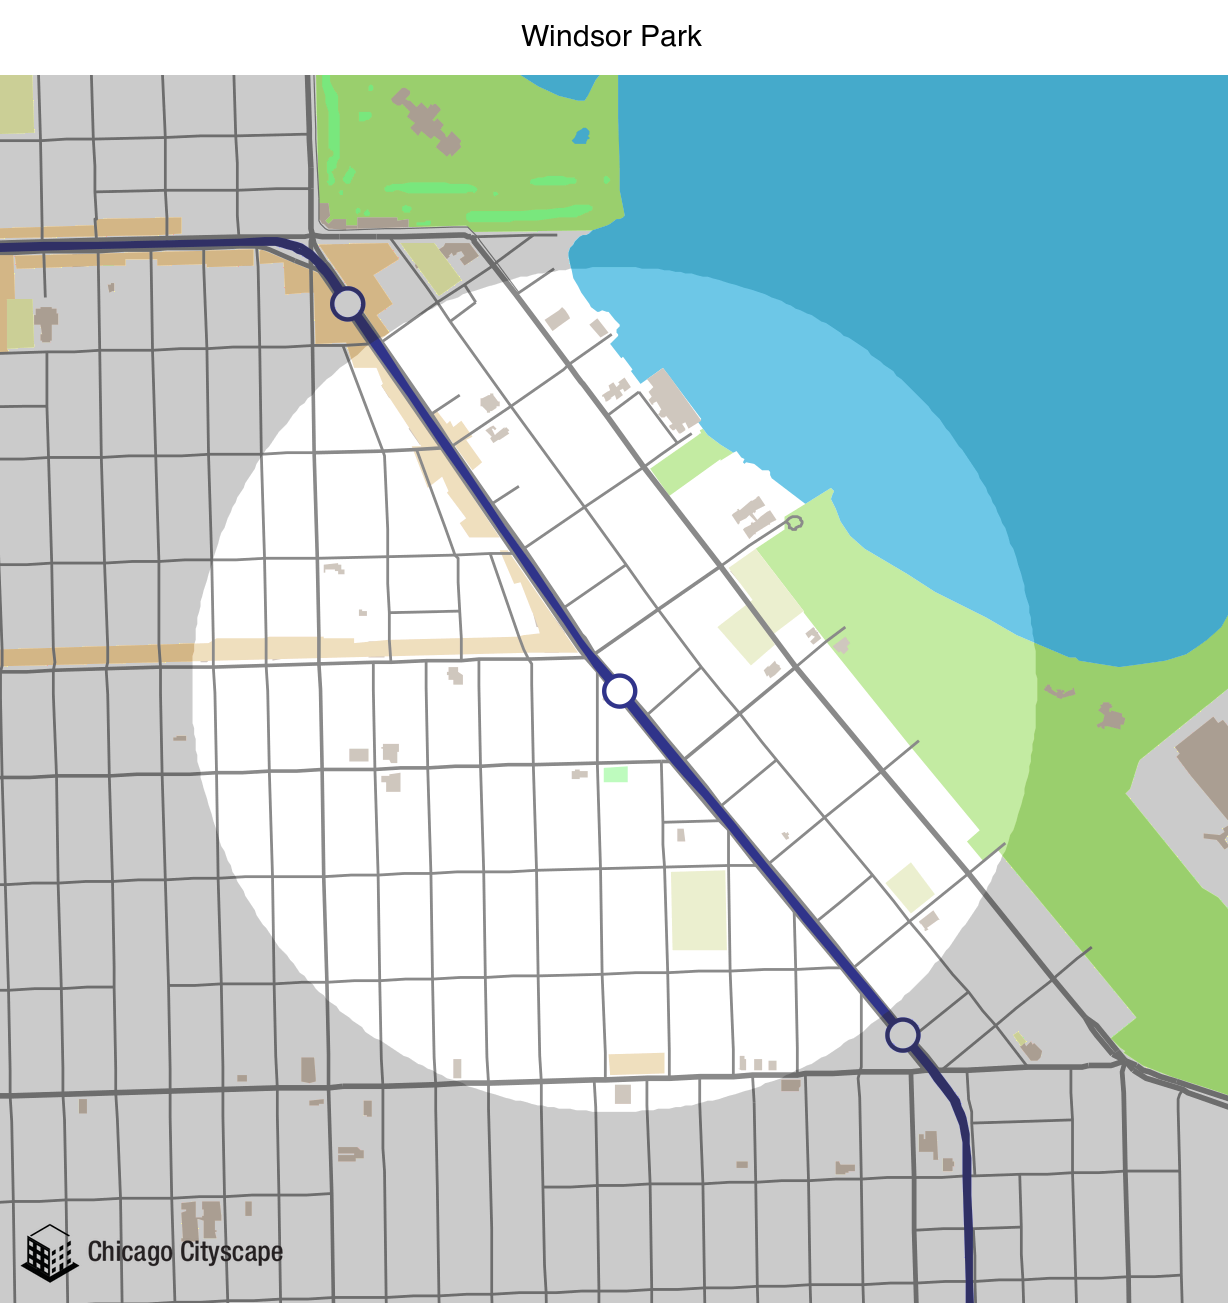 Metra Rail Station - Map of building projects, properties, and ...